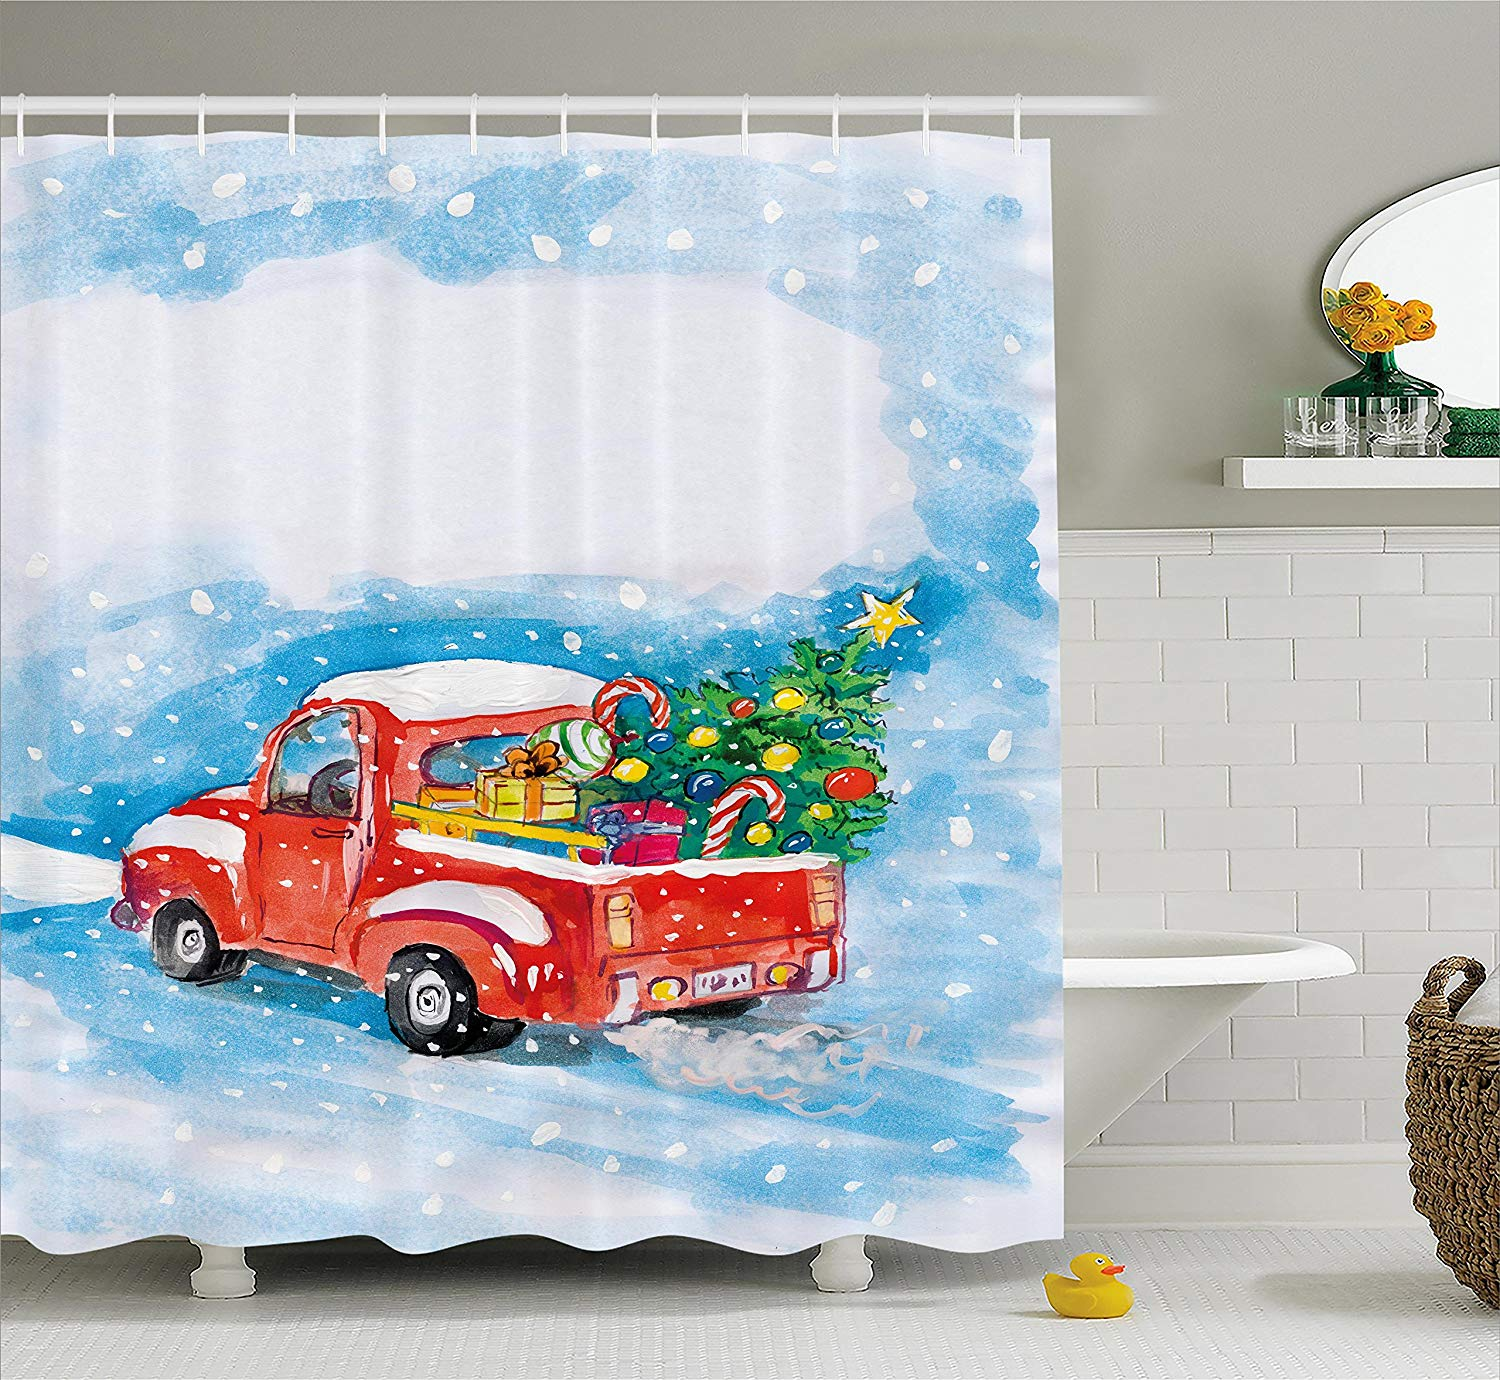 Christmas Shower Curtain Set Vintage Red Truck In Snowy Winter Scene Xmas Tree Gifts Candy Cane Kids